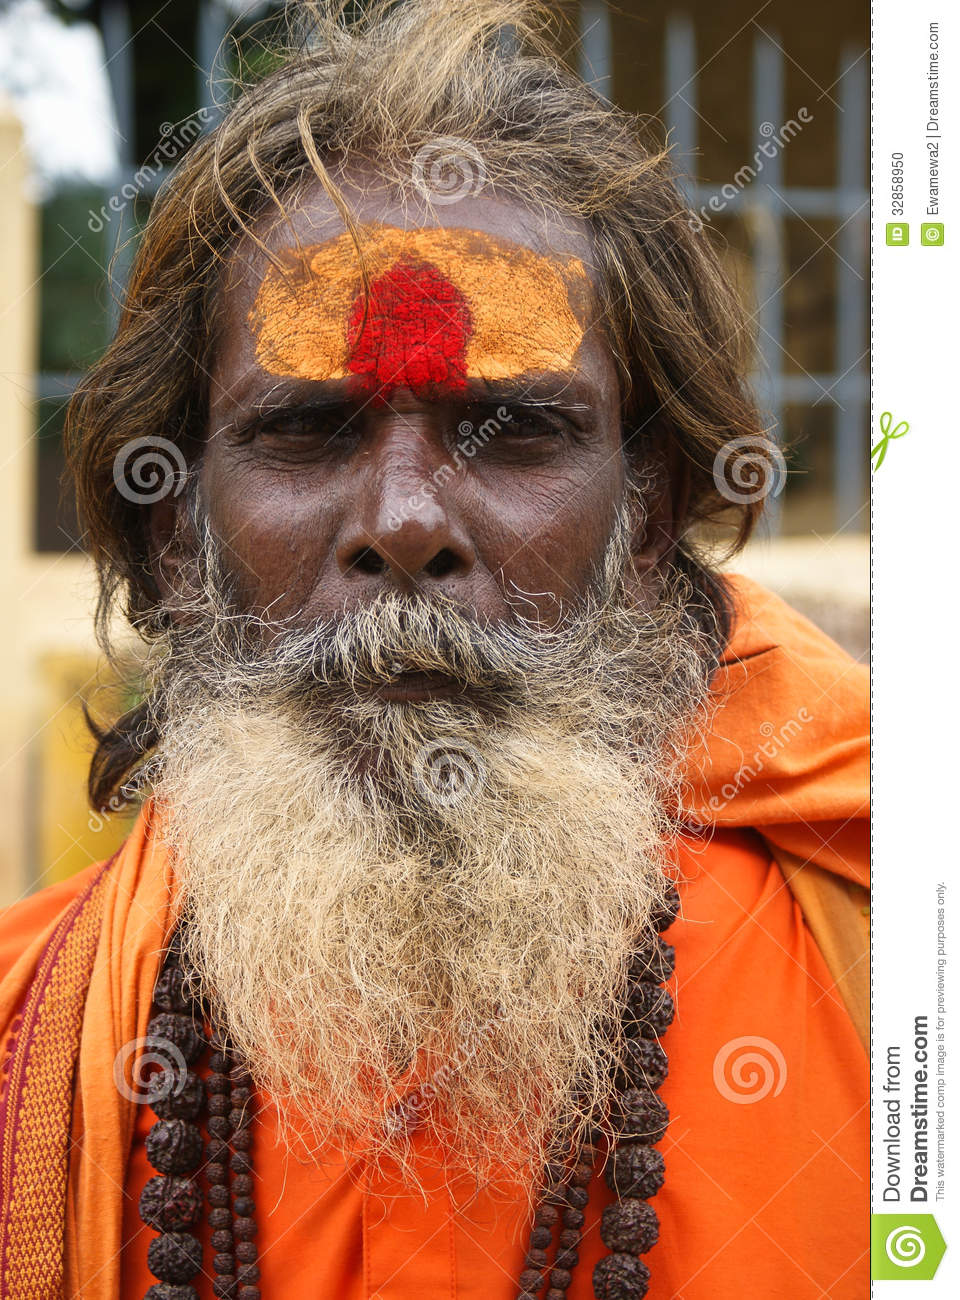 saint bernice hindu single men Showing our little lion dogs off to the rest of the world.